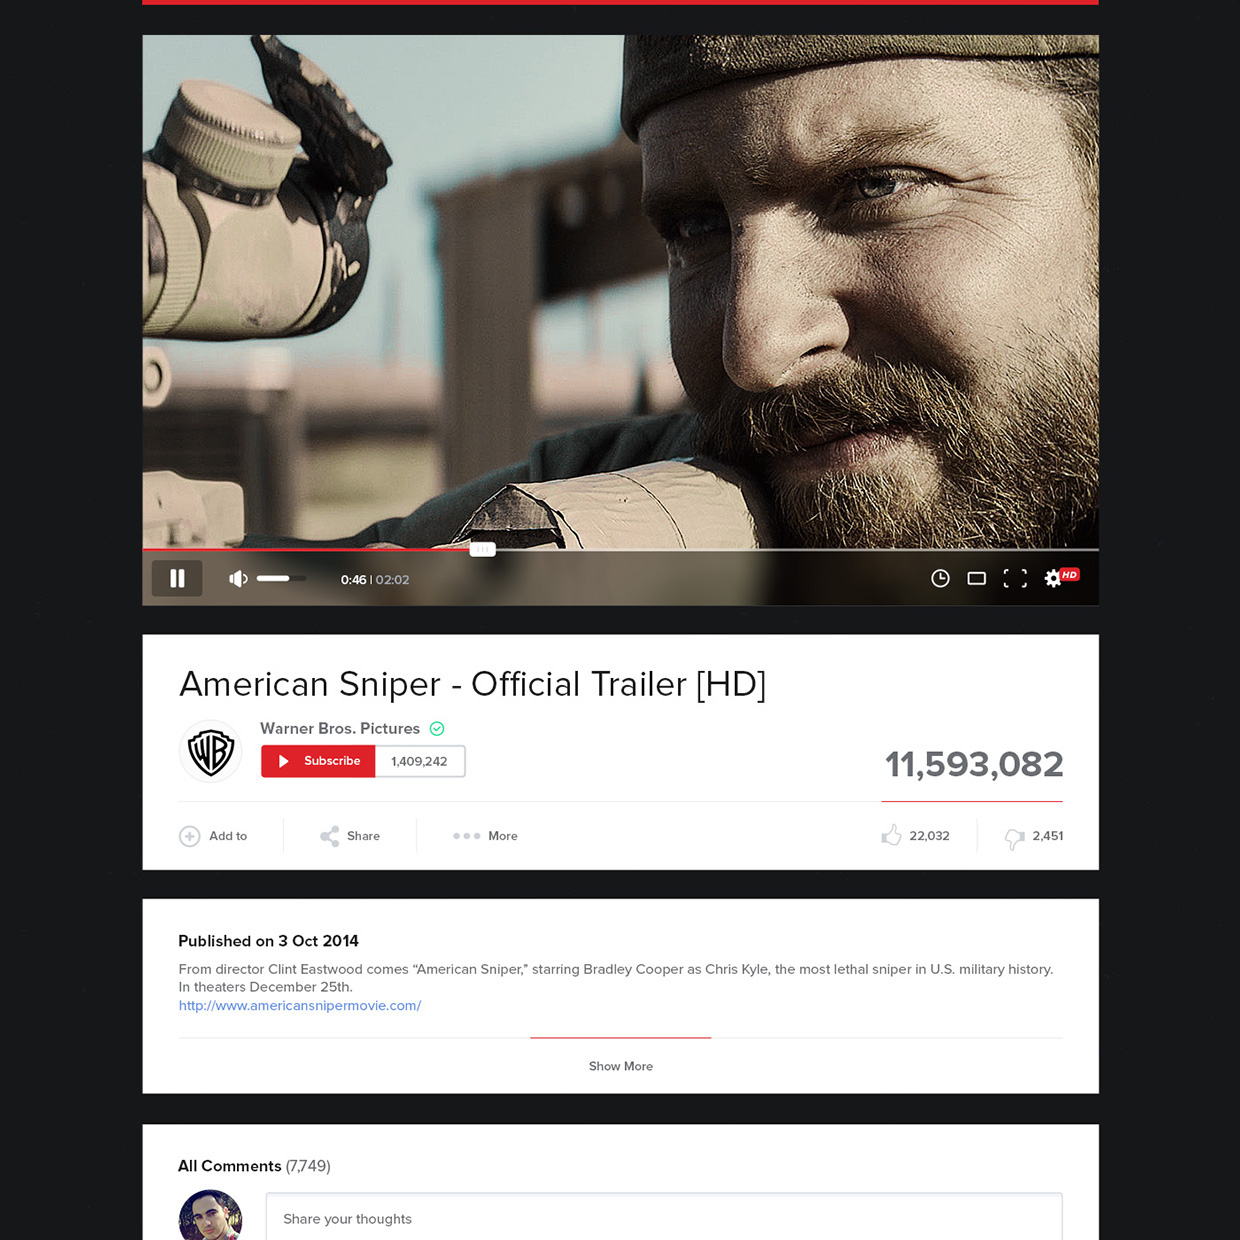 New UX Design Concept of YouTube 2015 By Lucas Nonato (11)